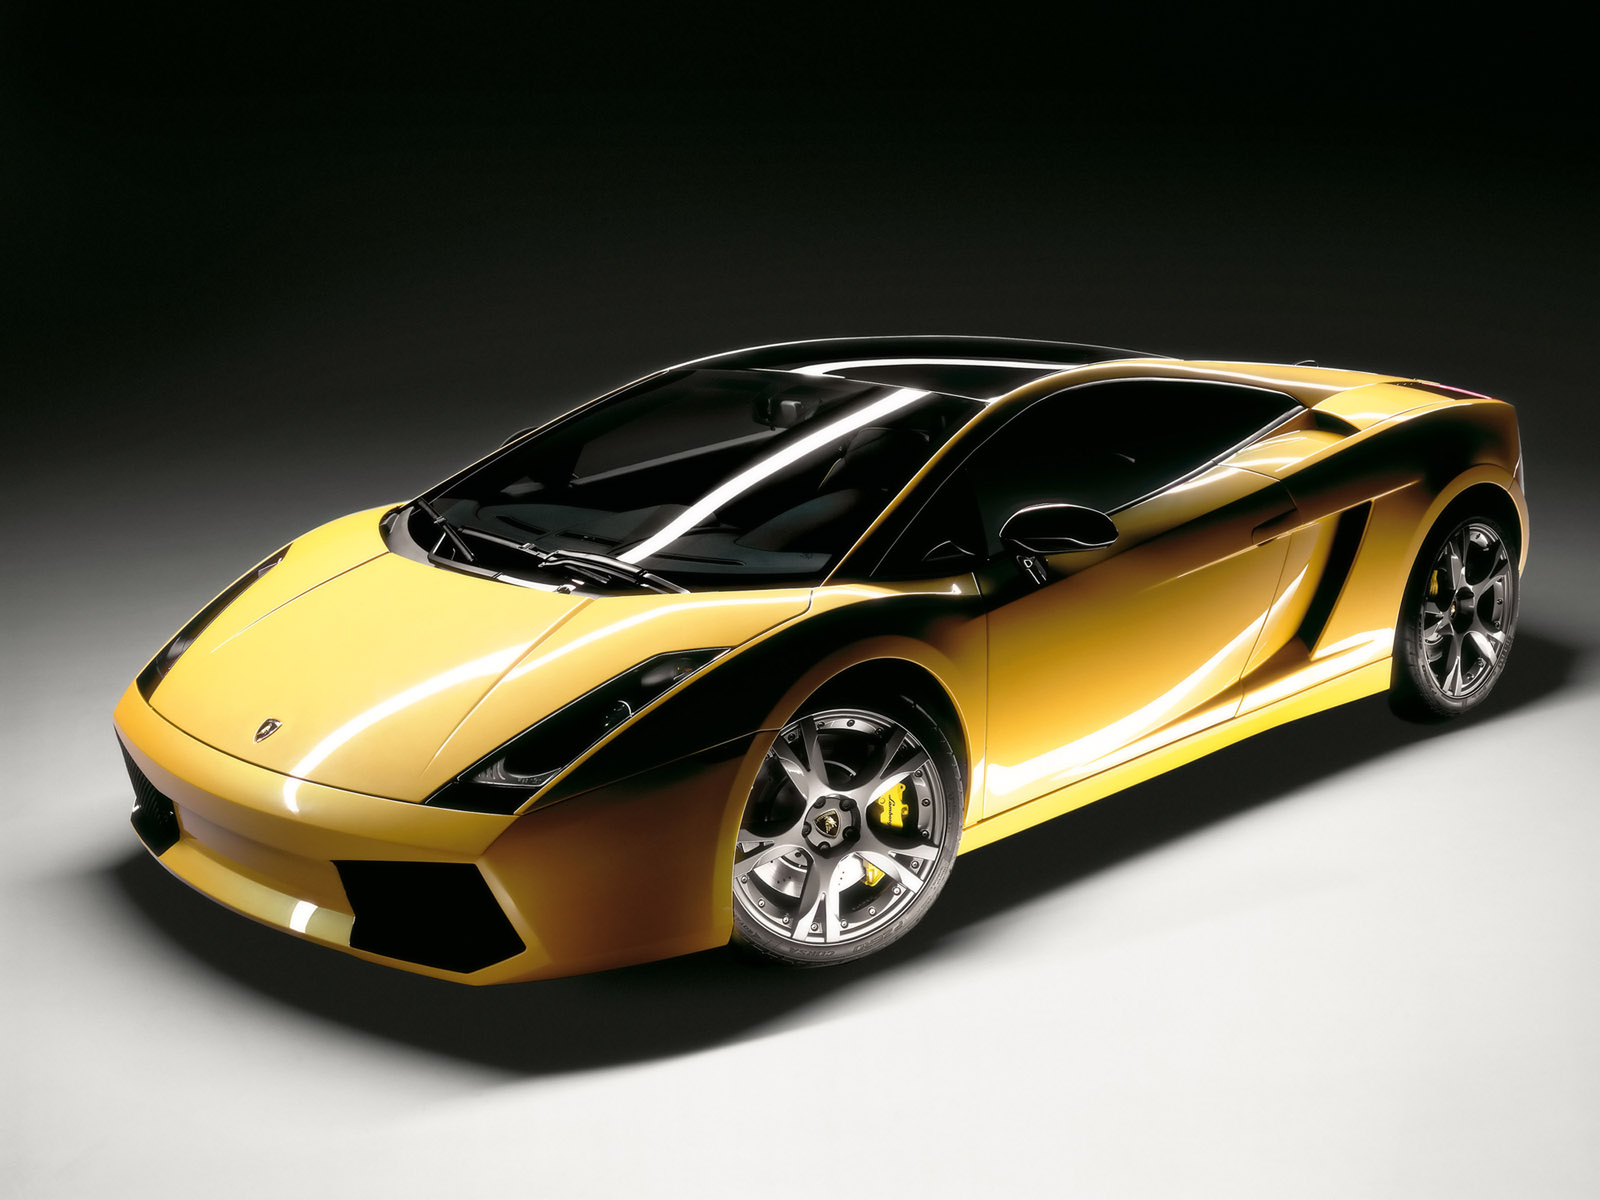 lamborghini-gallardo-wallpapers_386_1600.-4.bp.blogspot.com